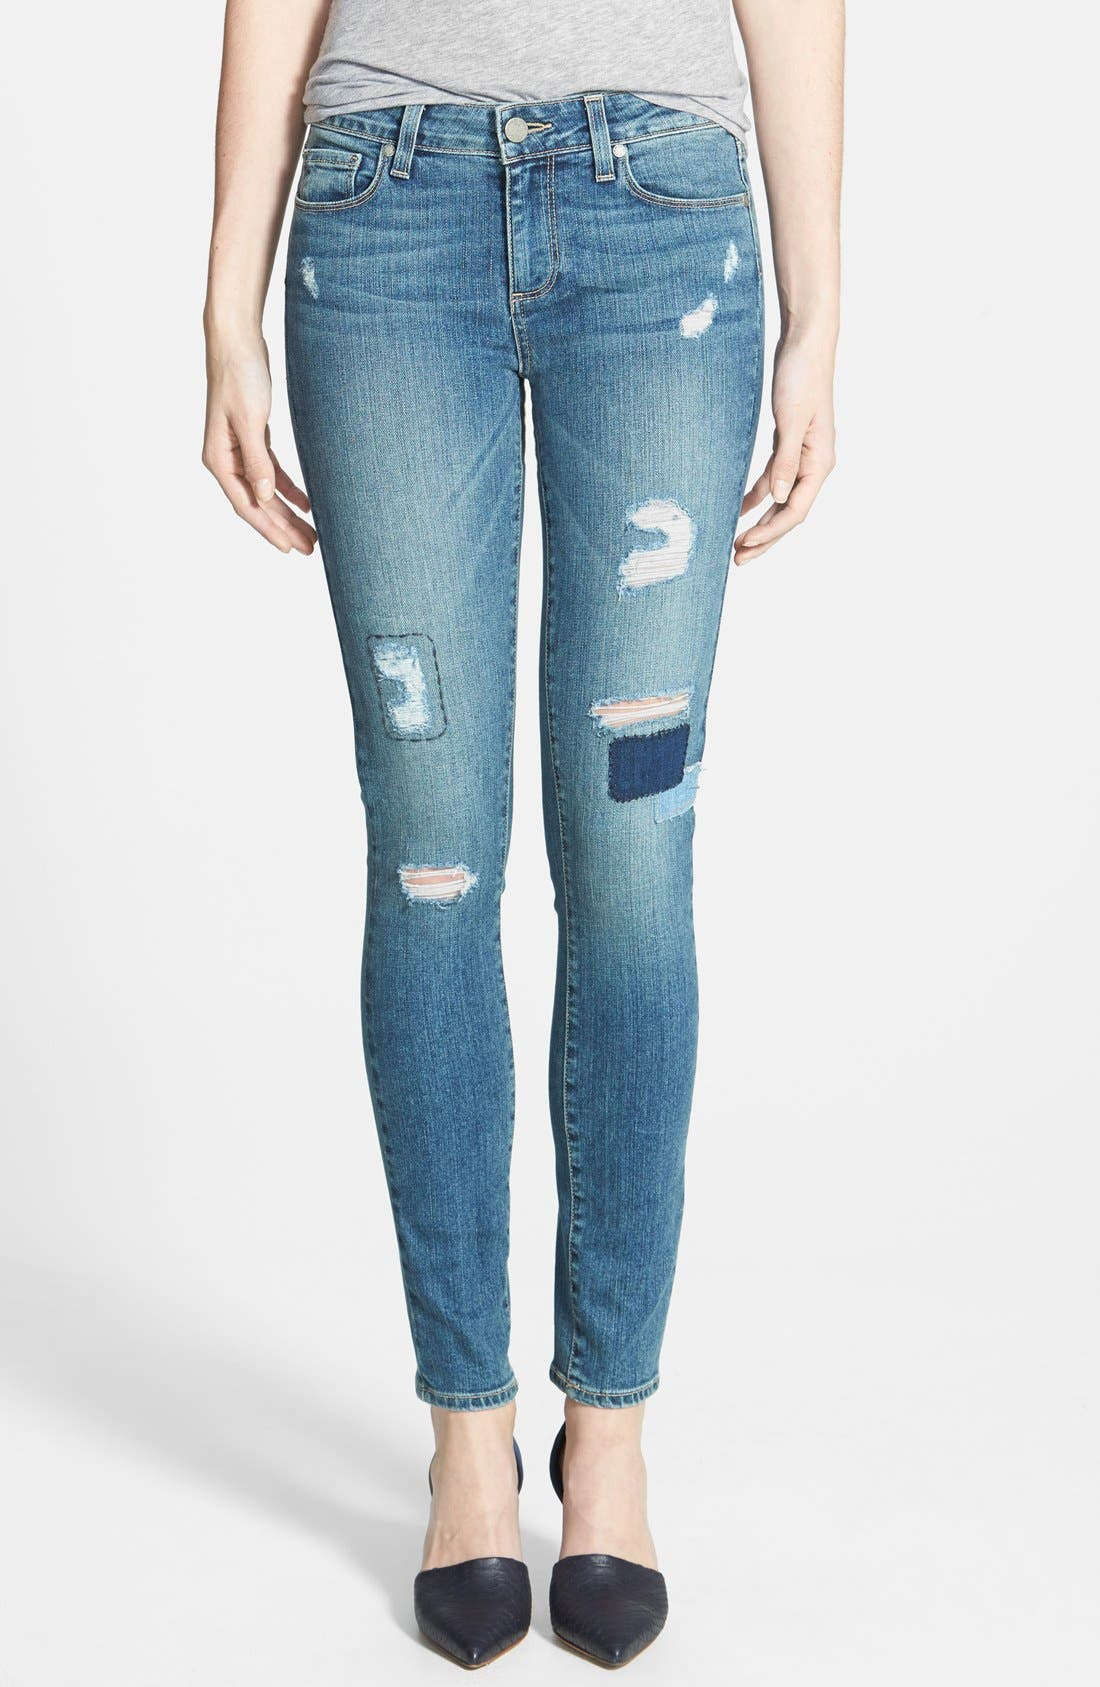 Alternate Image 1 Selected - Paige Denim 'Verdugo' Ultra Skinny Jeans (Dazeley Destructed)